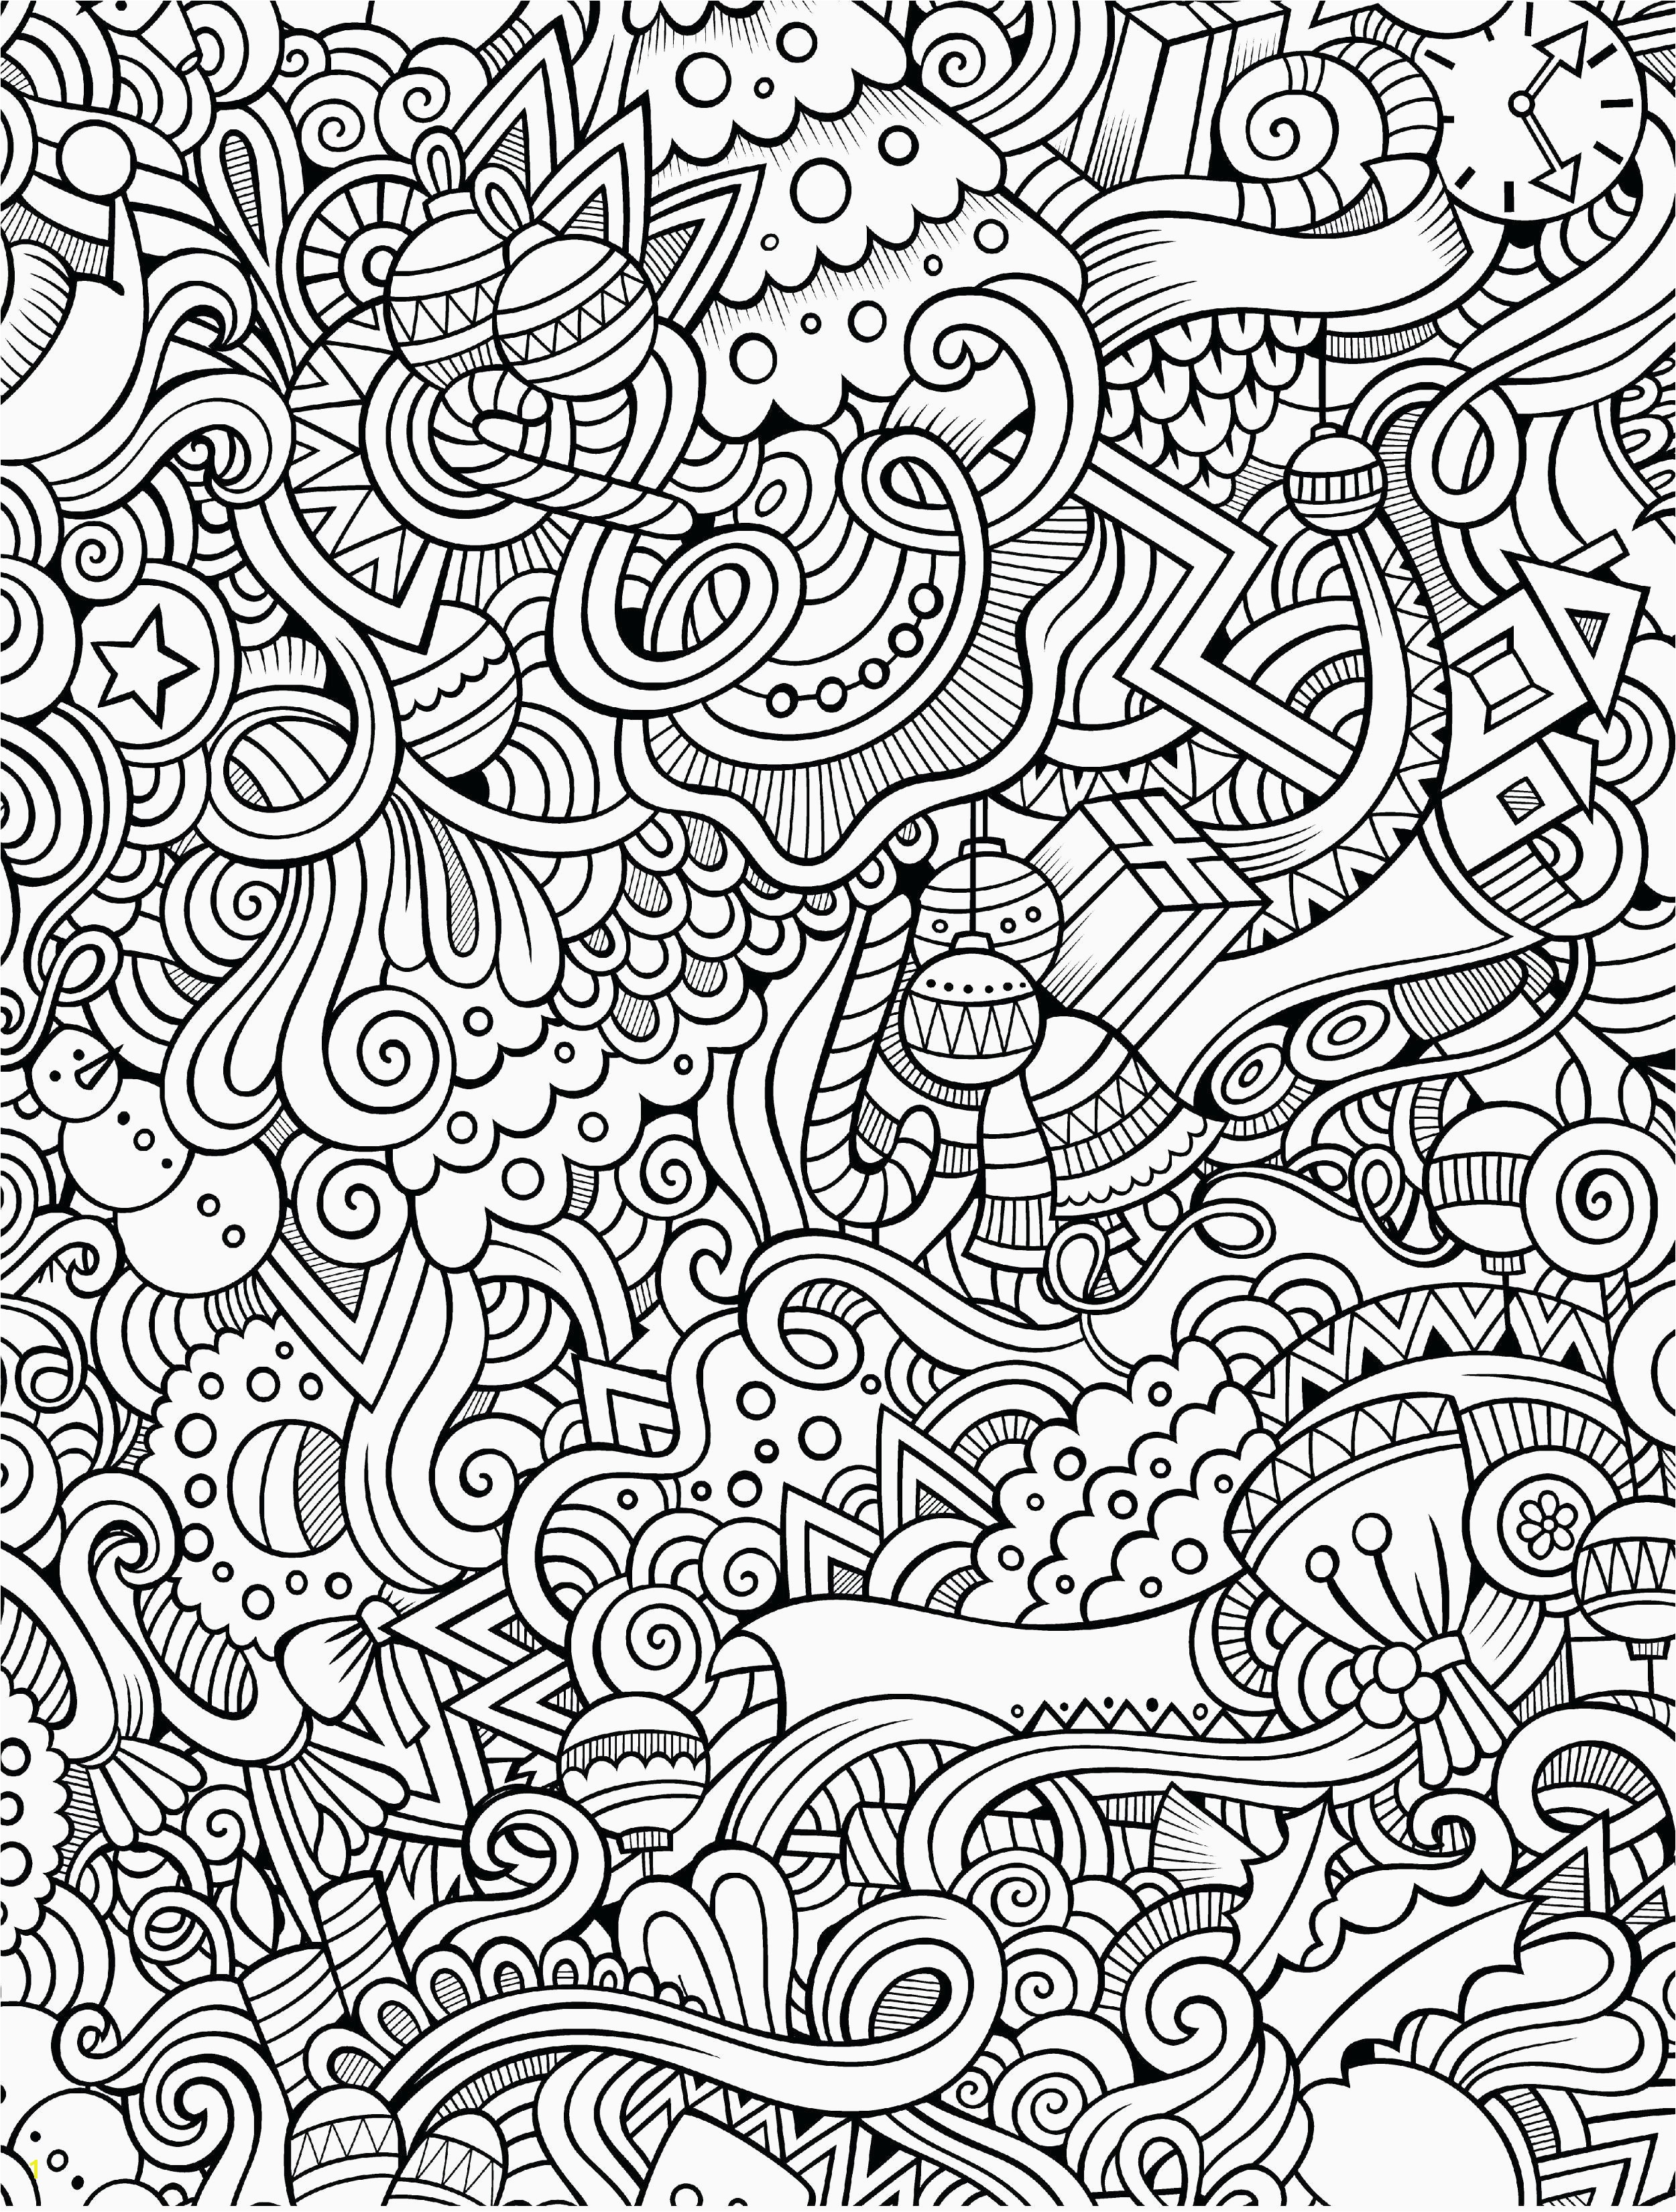 Free Printable Coloring Pages For Adults Printable Awesome Coloring Page For Adult Od Kids Simple Floral